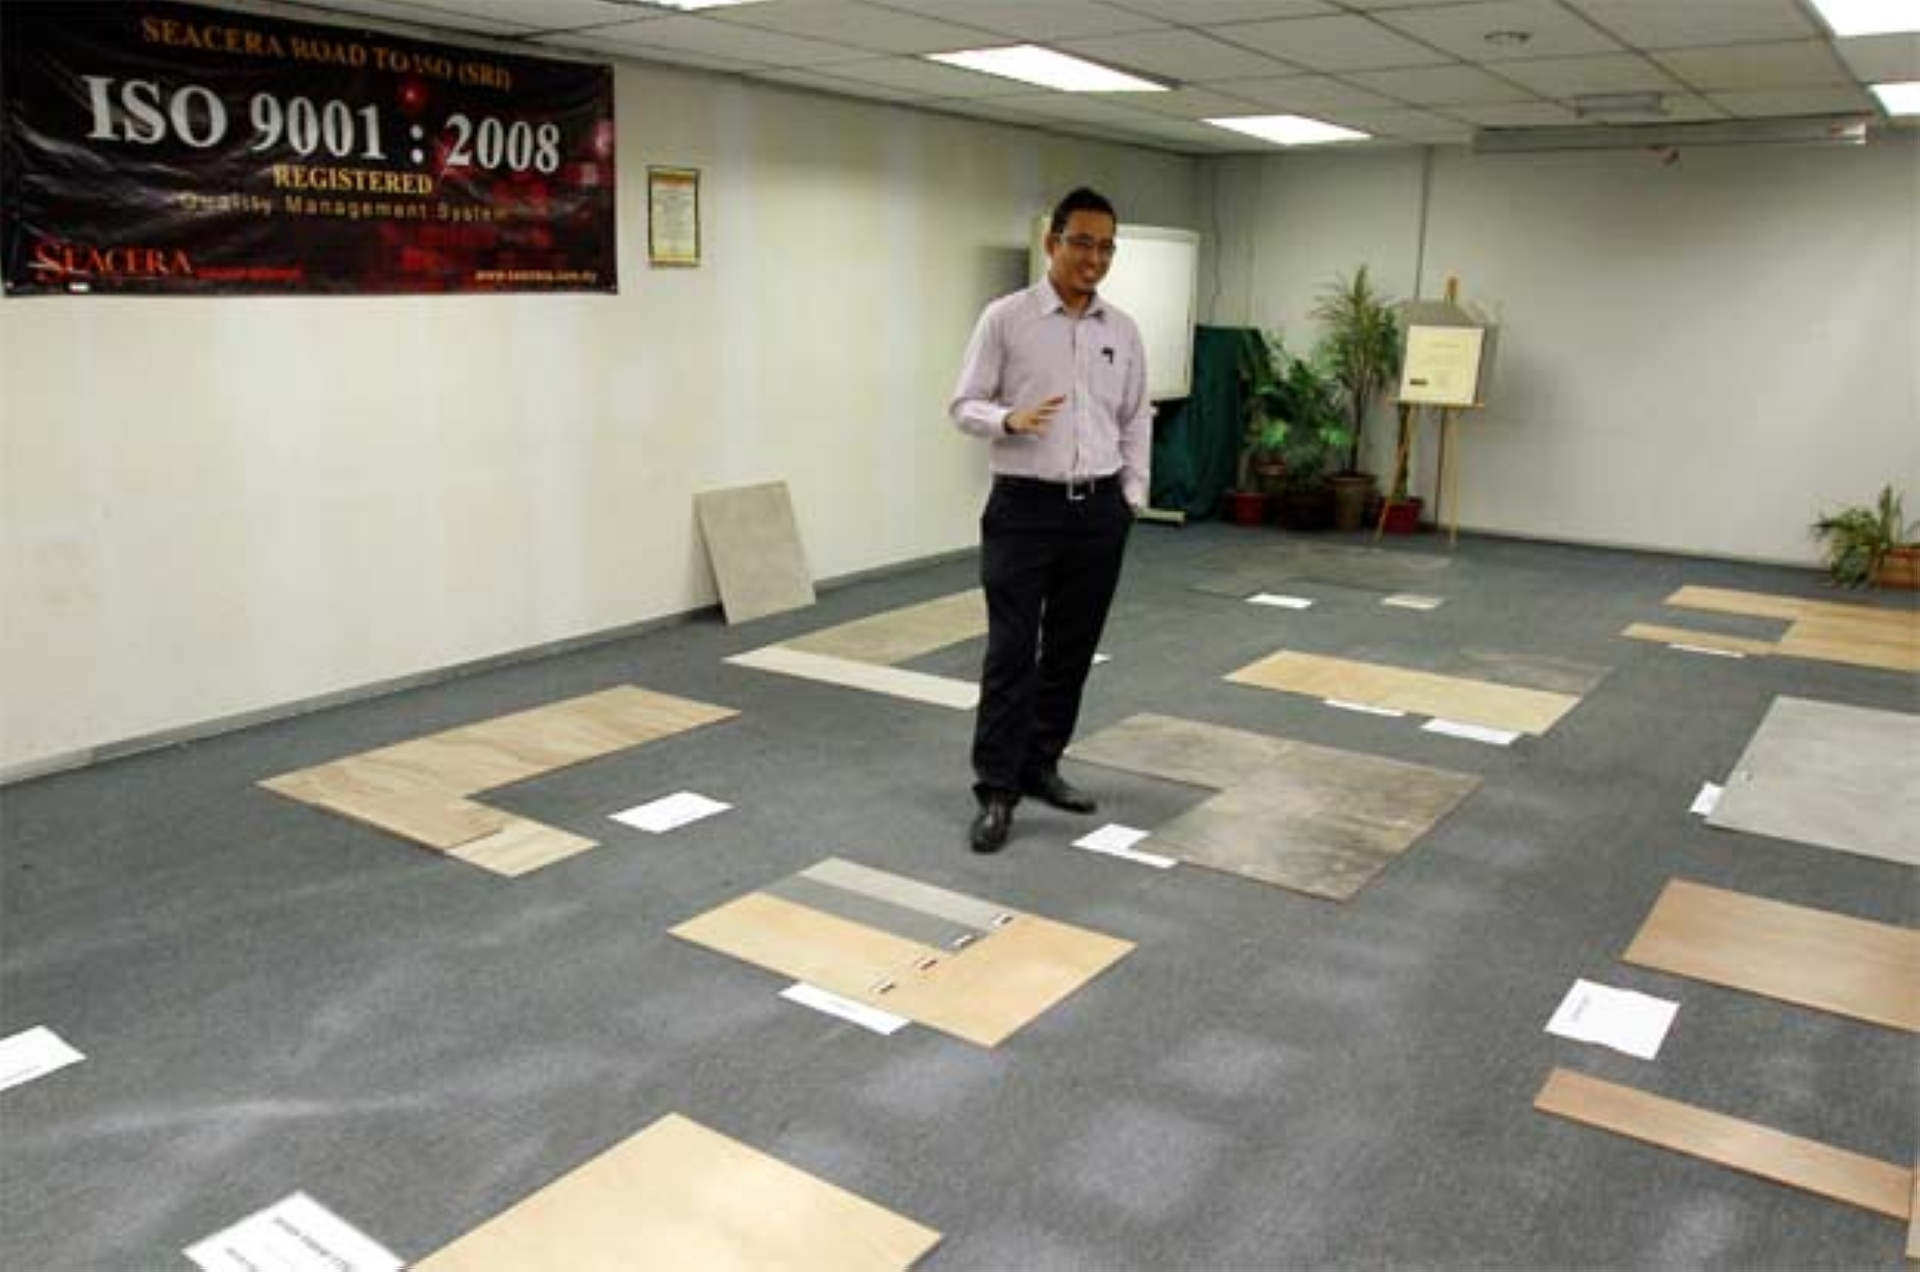 An official showing Seacera's tiles.